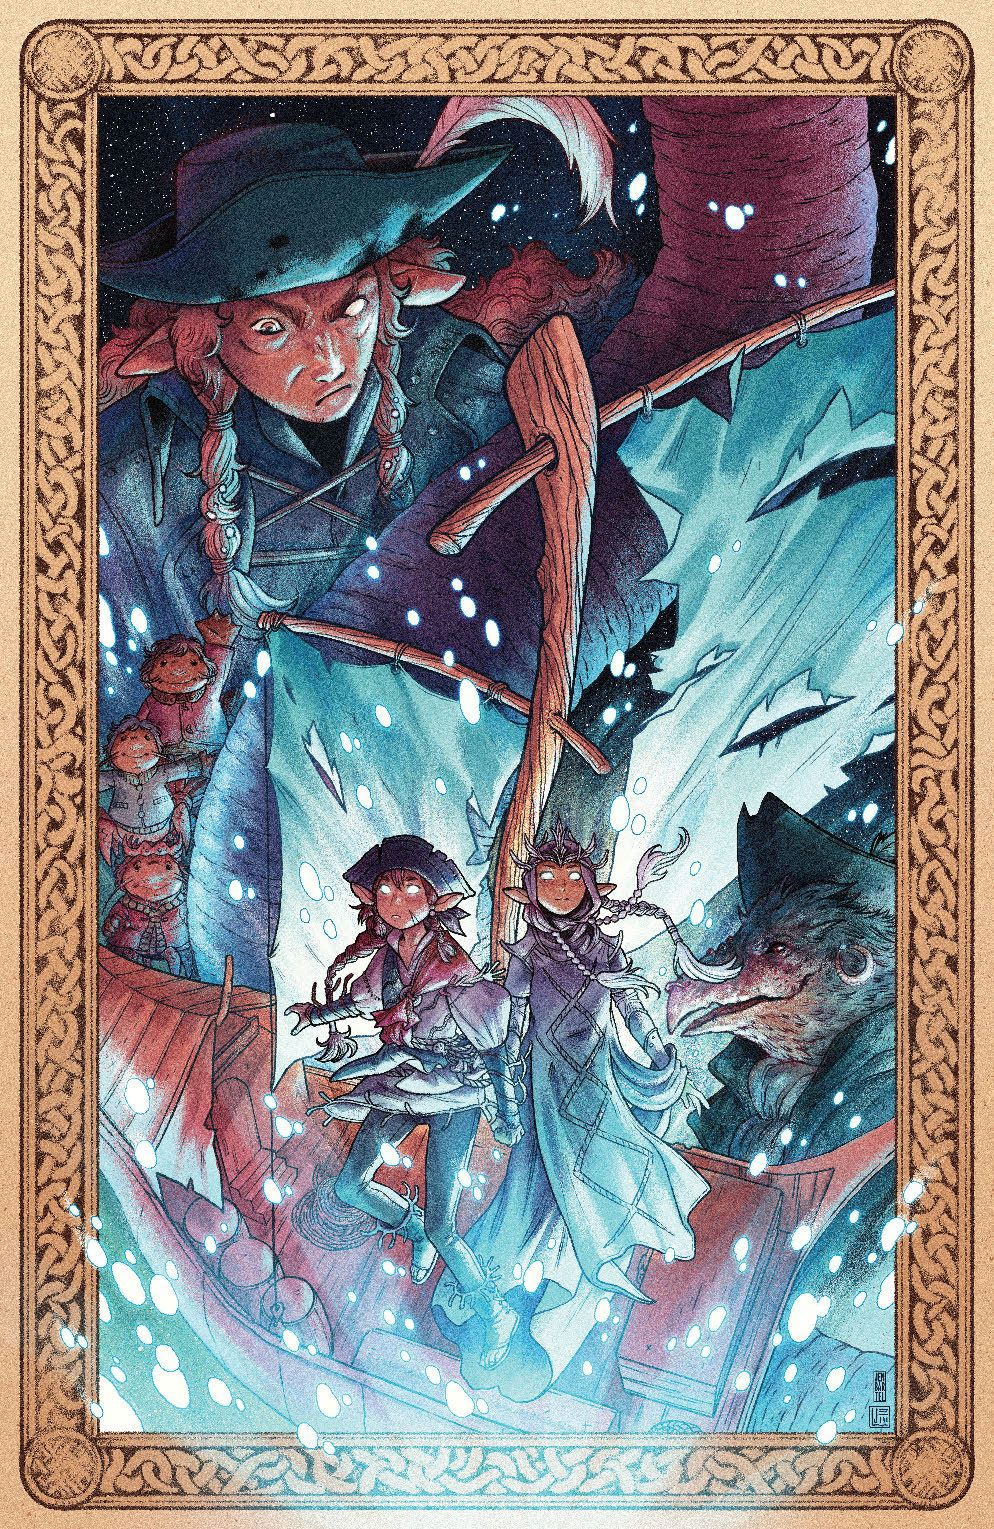 DarkCrystal_AgeResistance_009_Cover_Variant_001 ComicList: BOOM! Studios New Releases for 07/15/2020